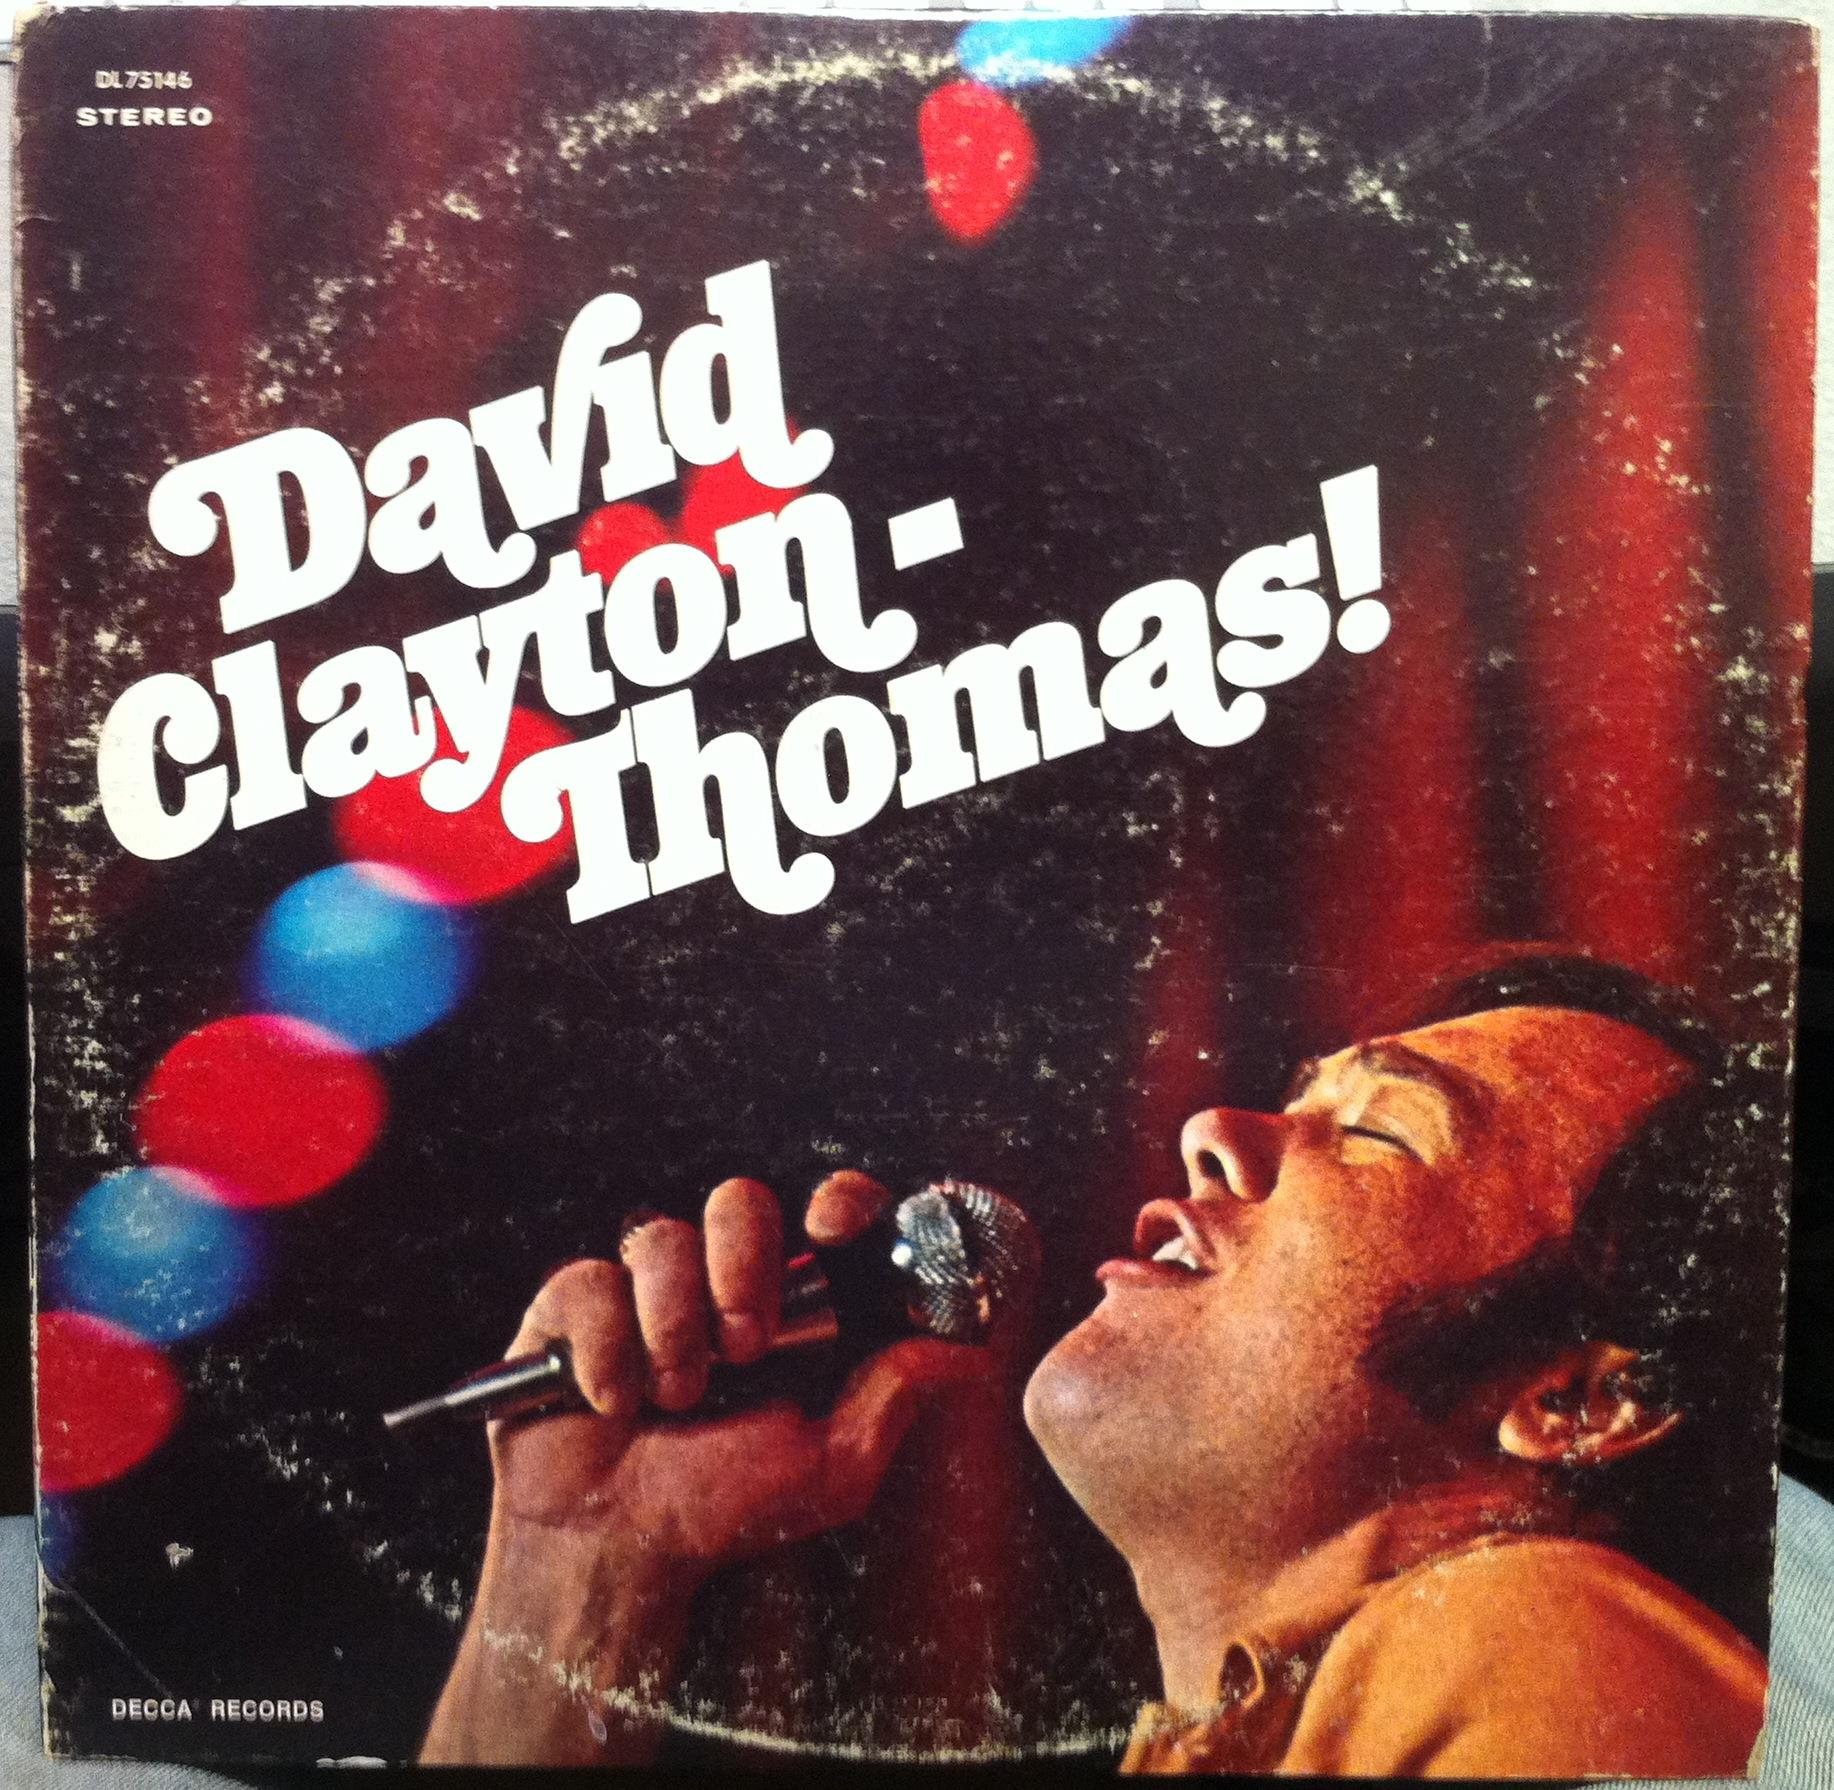 DAVID CLAYTON THOMAS - David Clayton Thomas S/t Lp Vg Dl 75146 Vinyl 1969 Record (s/t)